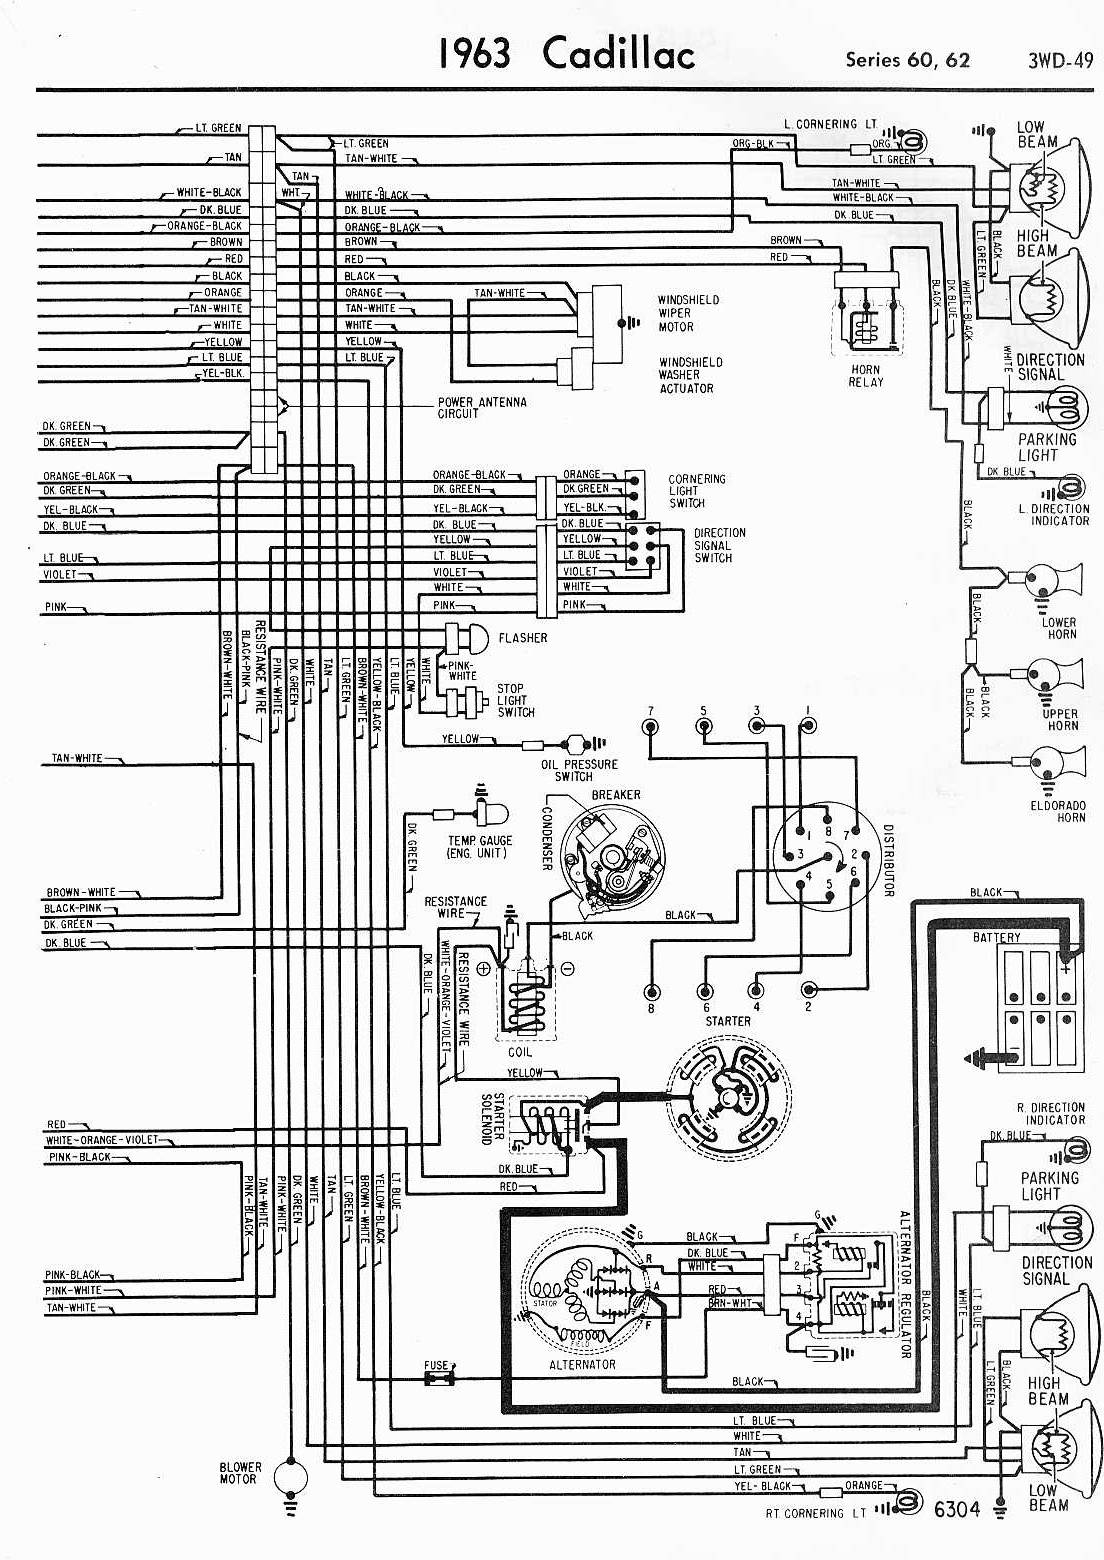 cadillac car manuals wiring diagrams pdf fault codes rh automotive manuals net 1999 Cadillac DeVille Wiring-Diagram Wiring Diagram for 2003 Cadillac SLS